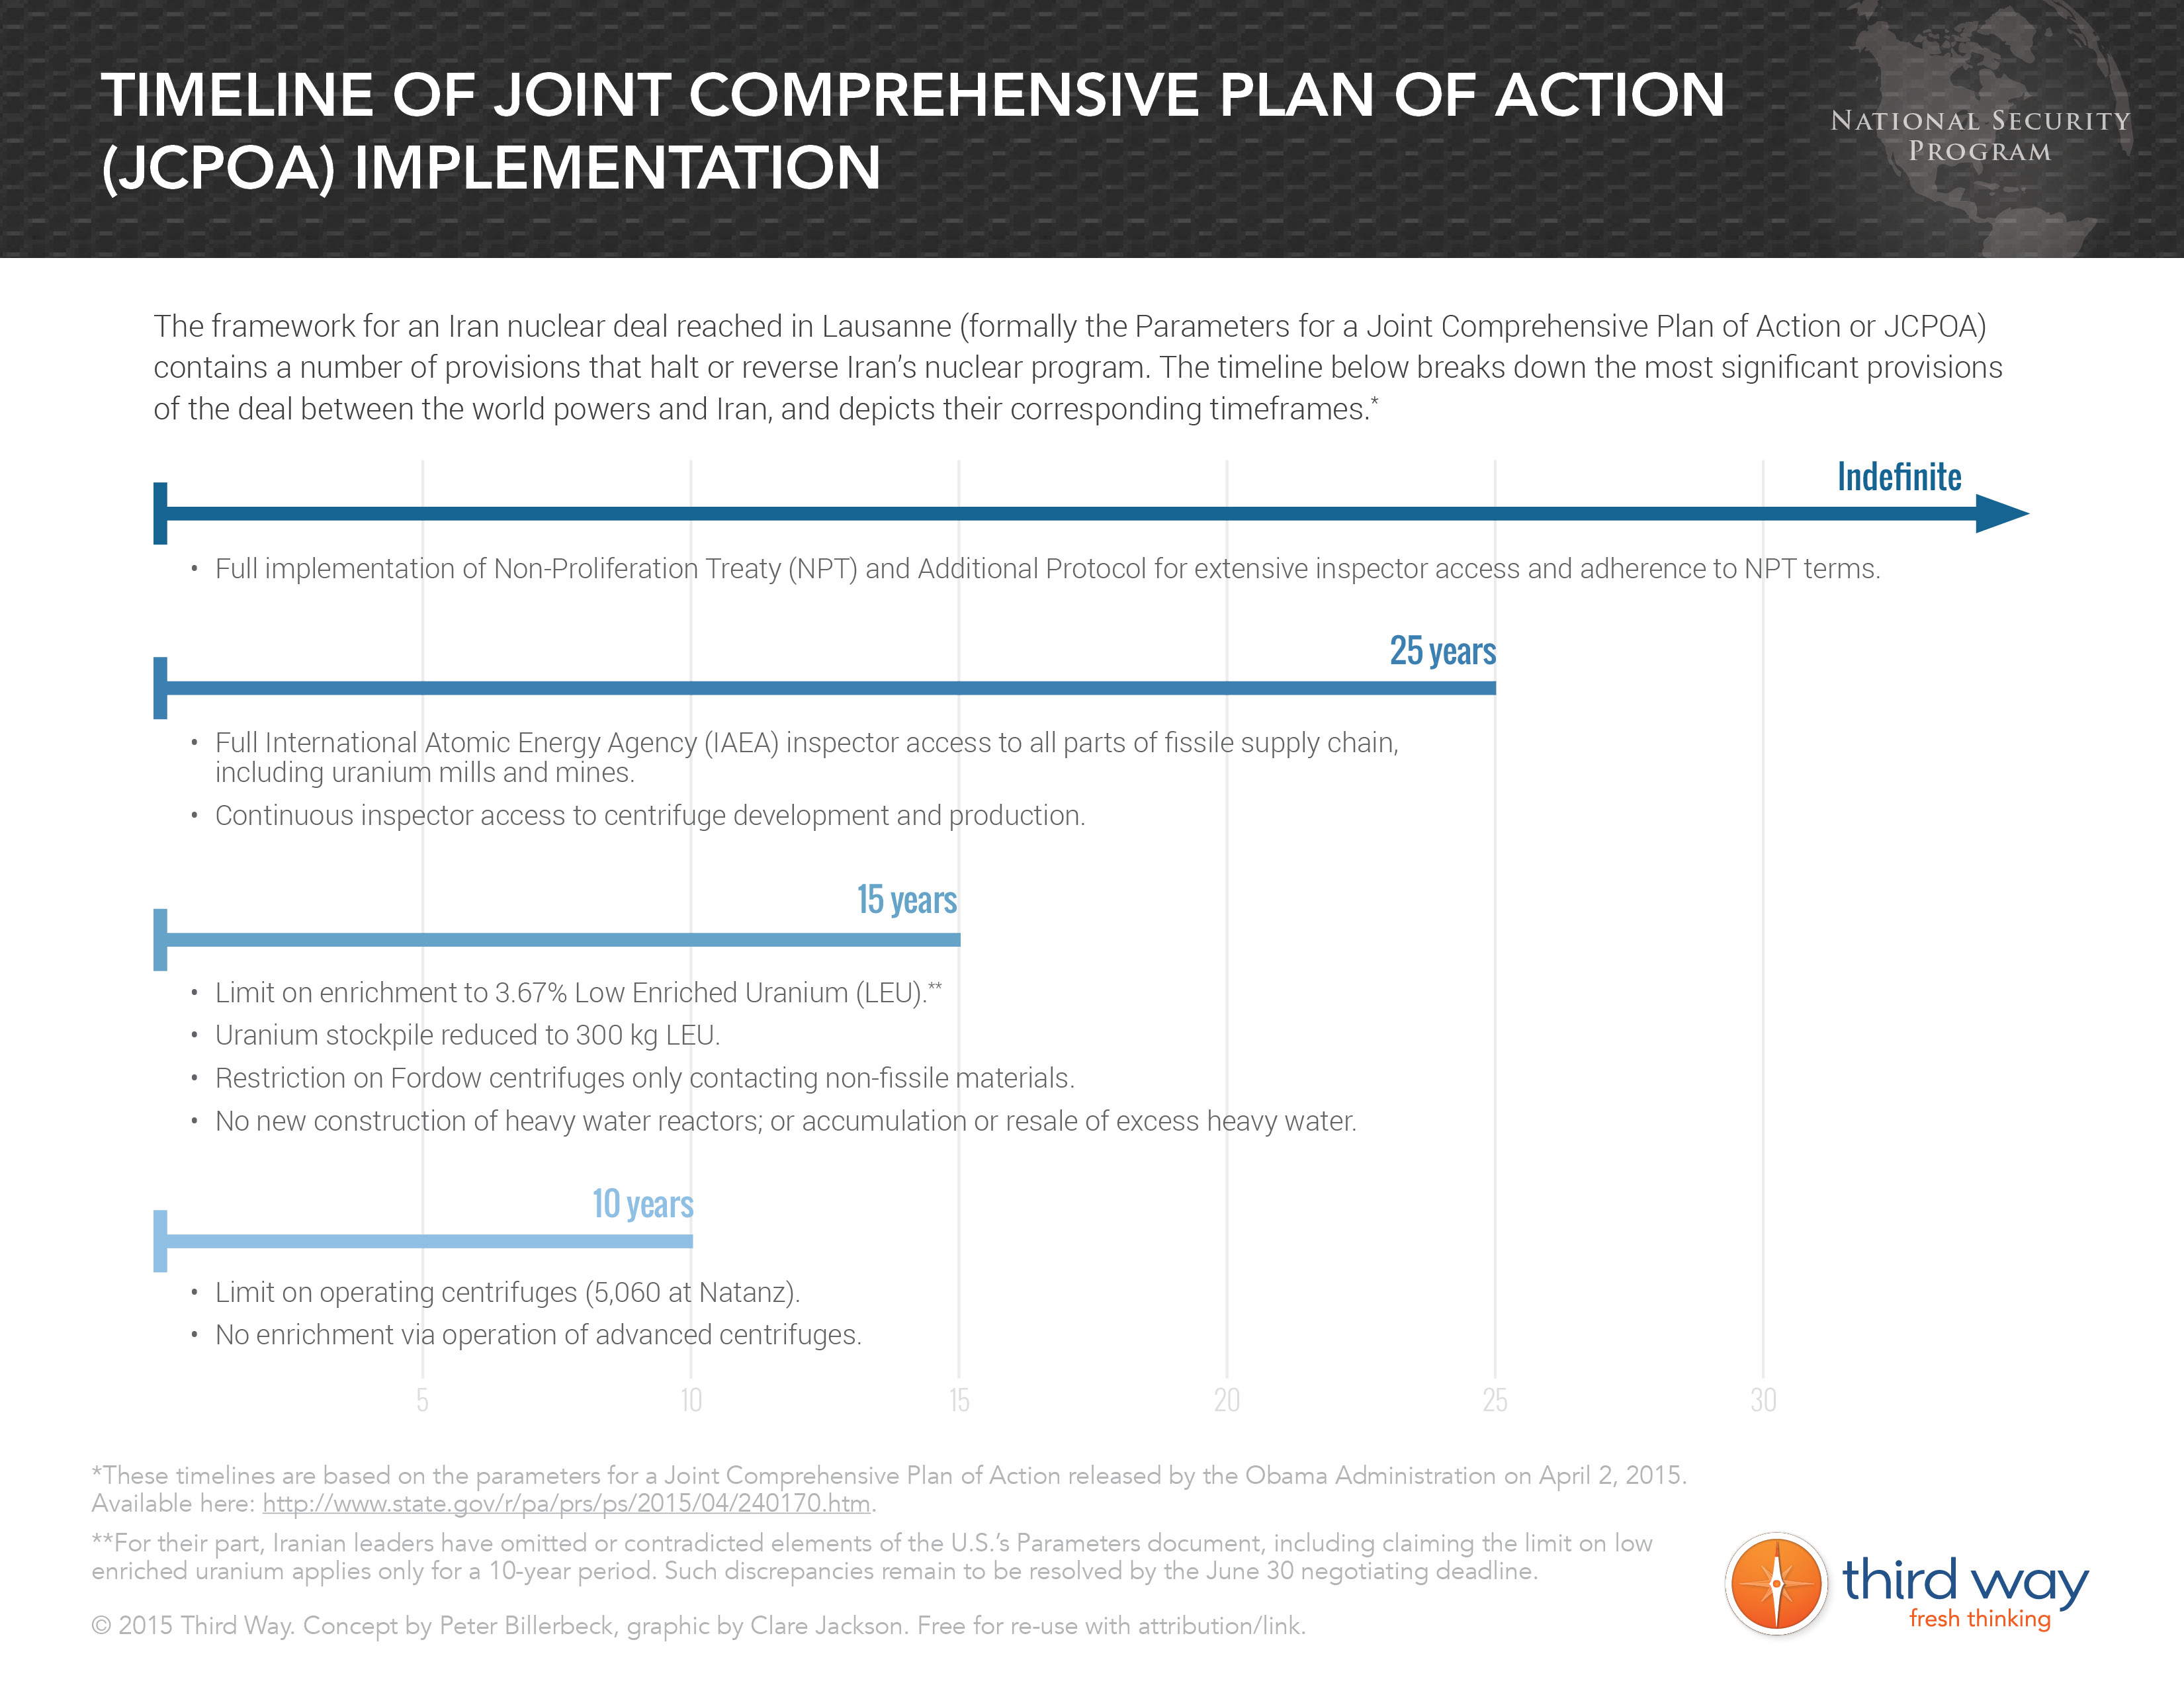 Timeline of Joint Comprehensive Plan of Action (JCPOA) Implementation